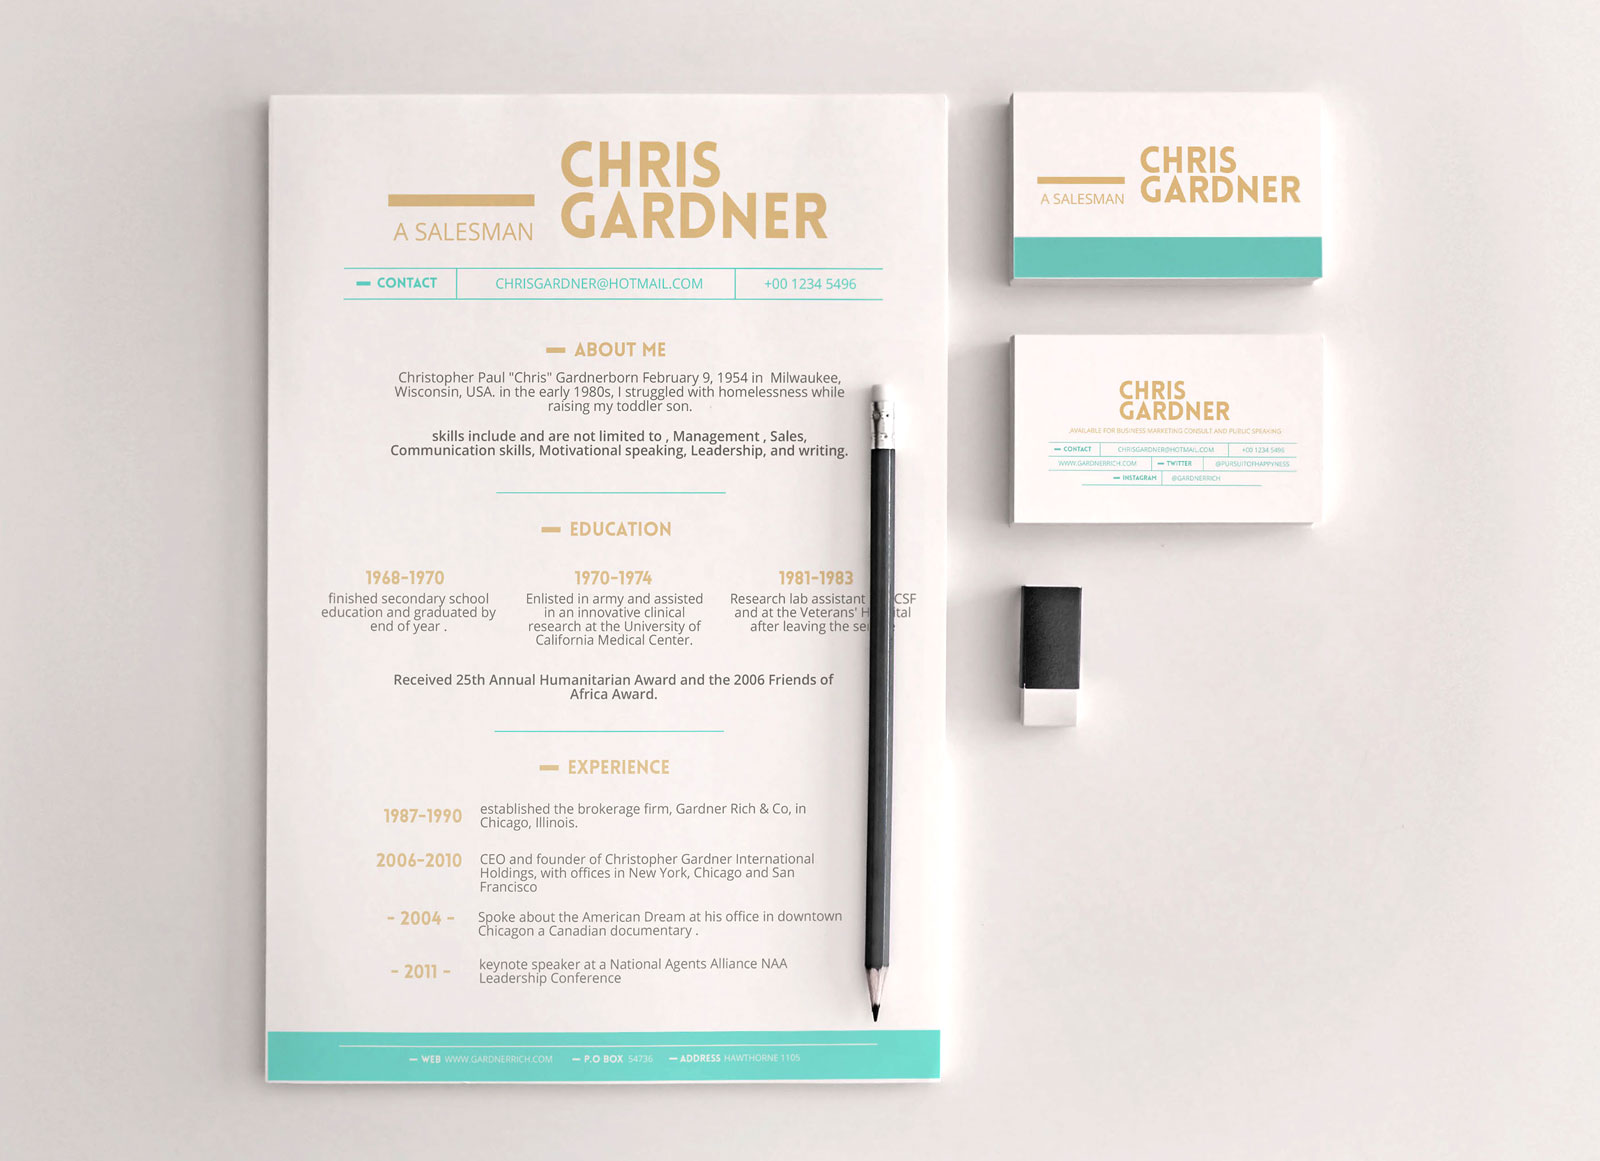 Free-Minimalistic-Resume-Template-in-Photoshop-PSD-Format-3